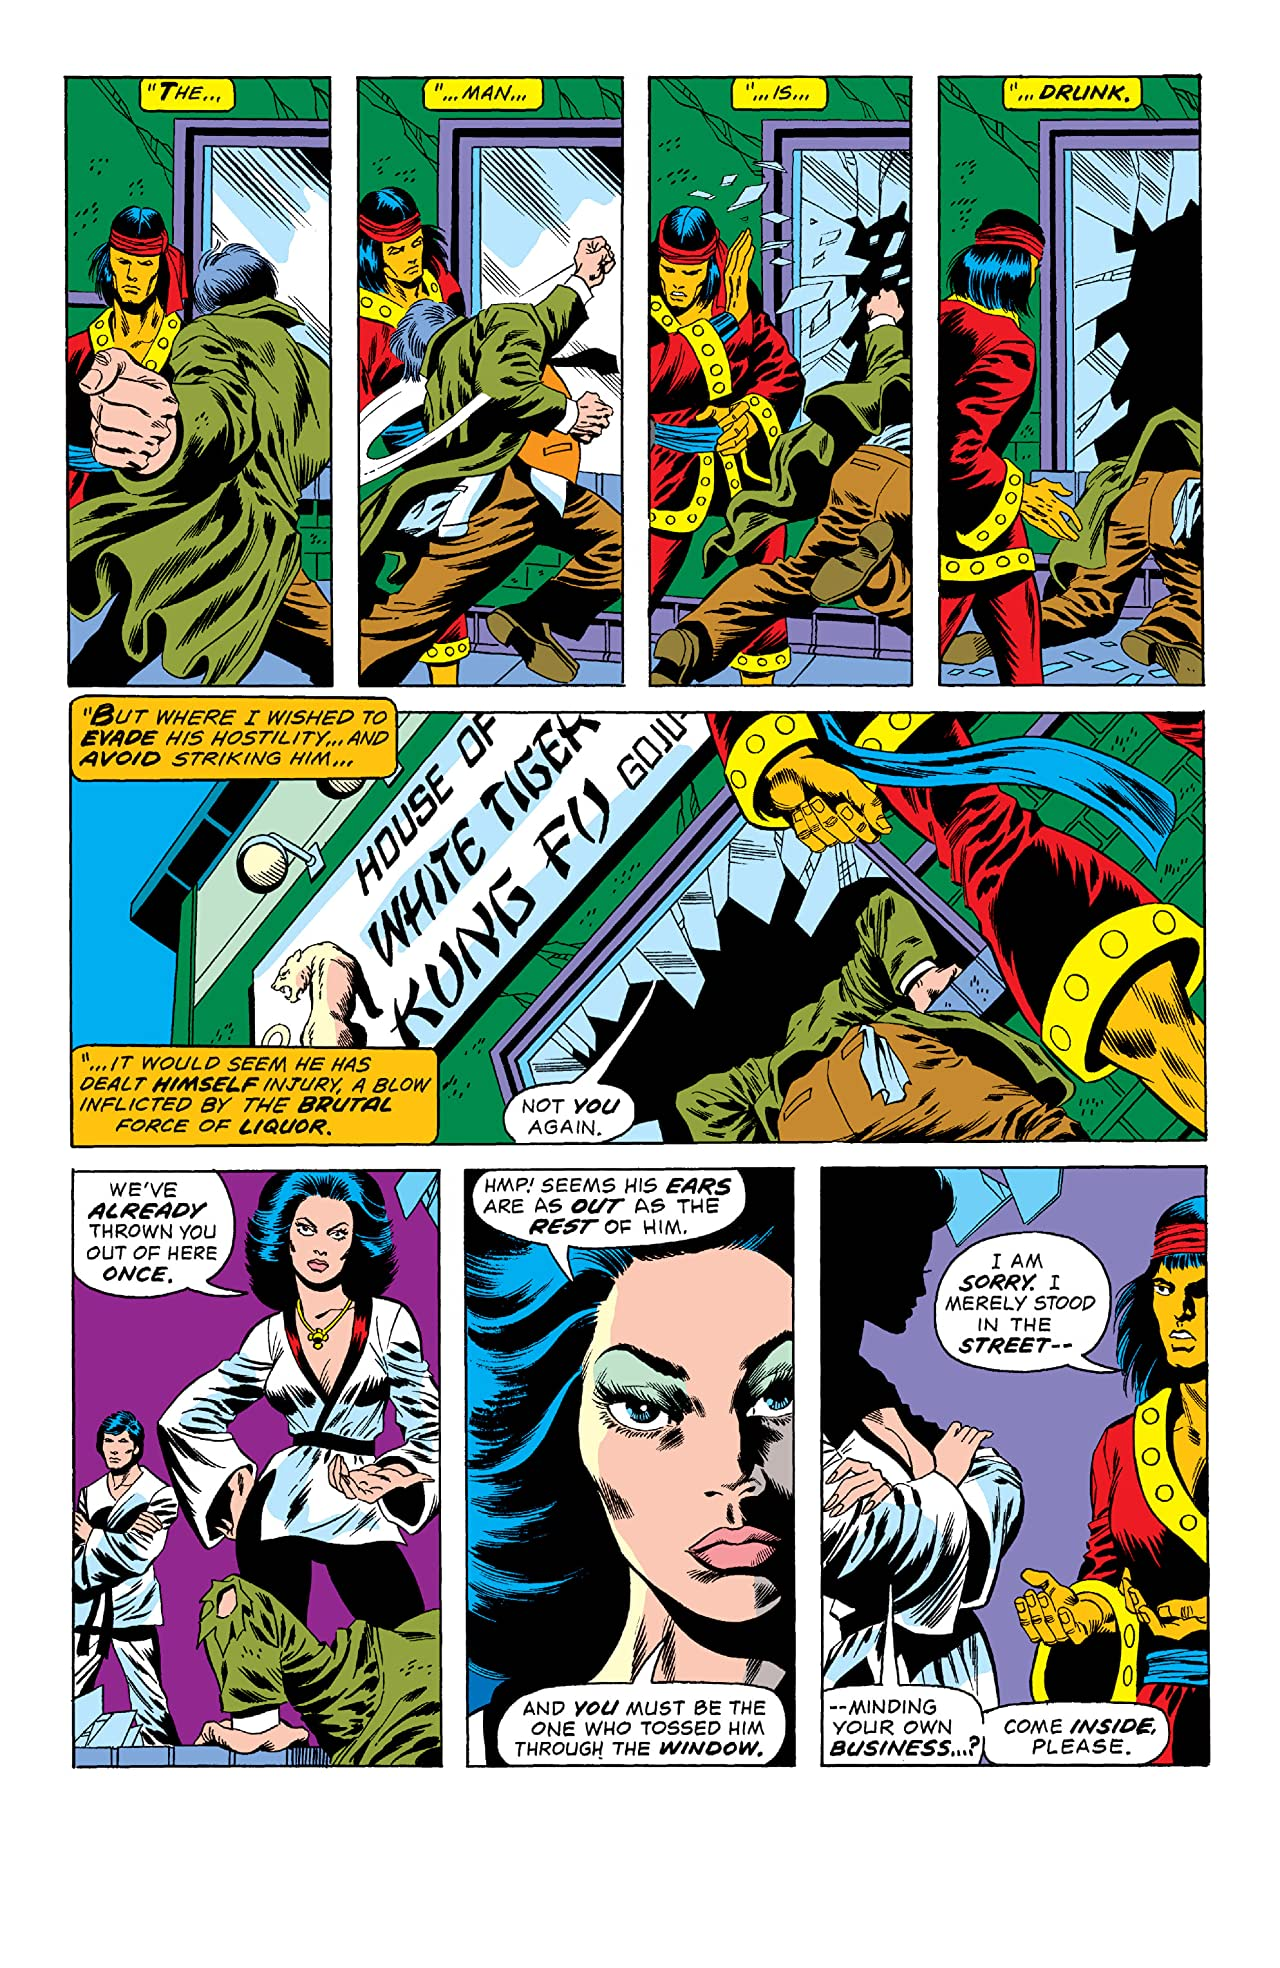 Giant-Size Master of Kung Fu (1974-1975) #2